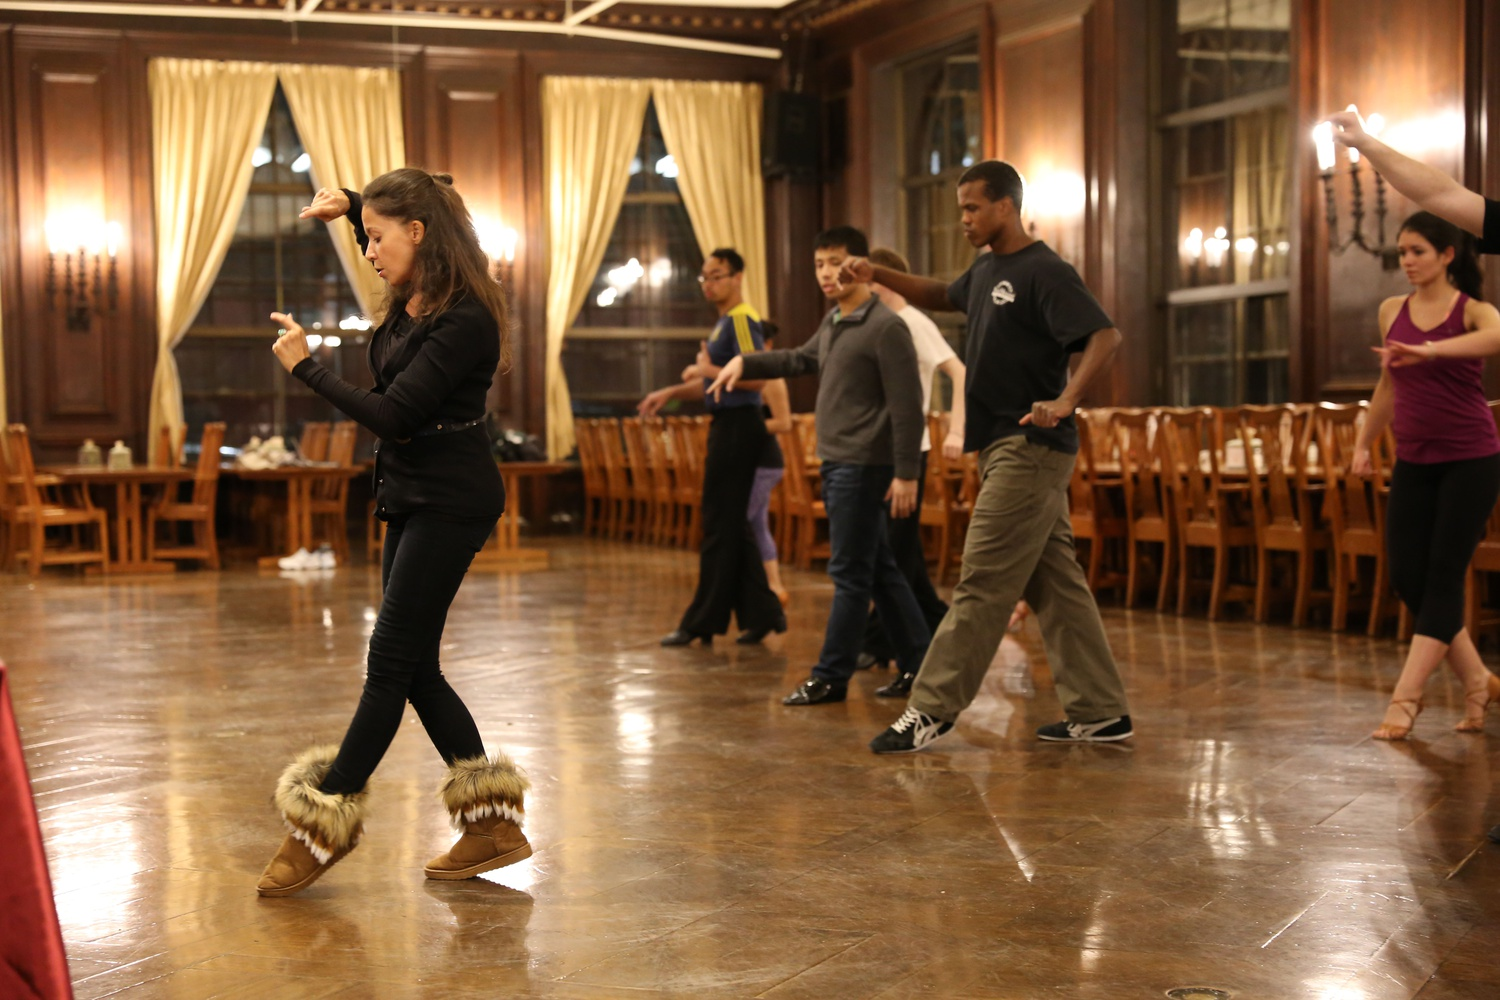 Olga Kinnard, a coach for the Harvard Ballroom Dance Team, teaches students during a free Wintersession dance lesson hosted by Harvard Ballroom in the Adams Dining Hall Wednesday night.